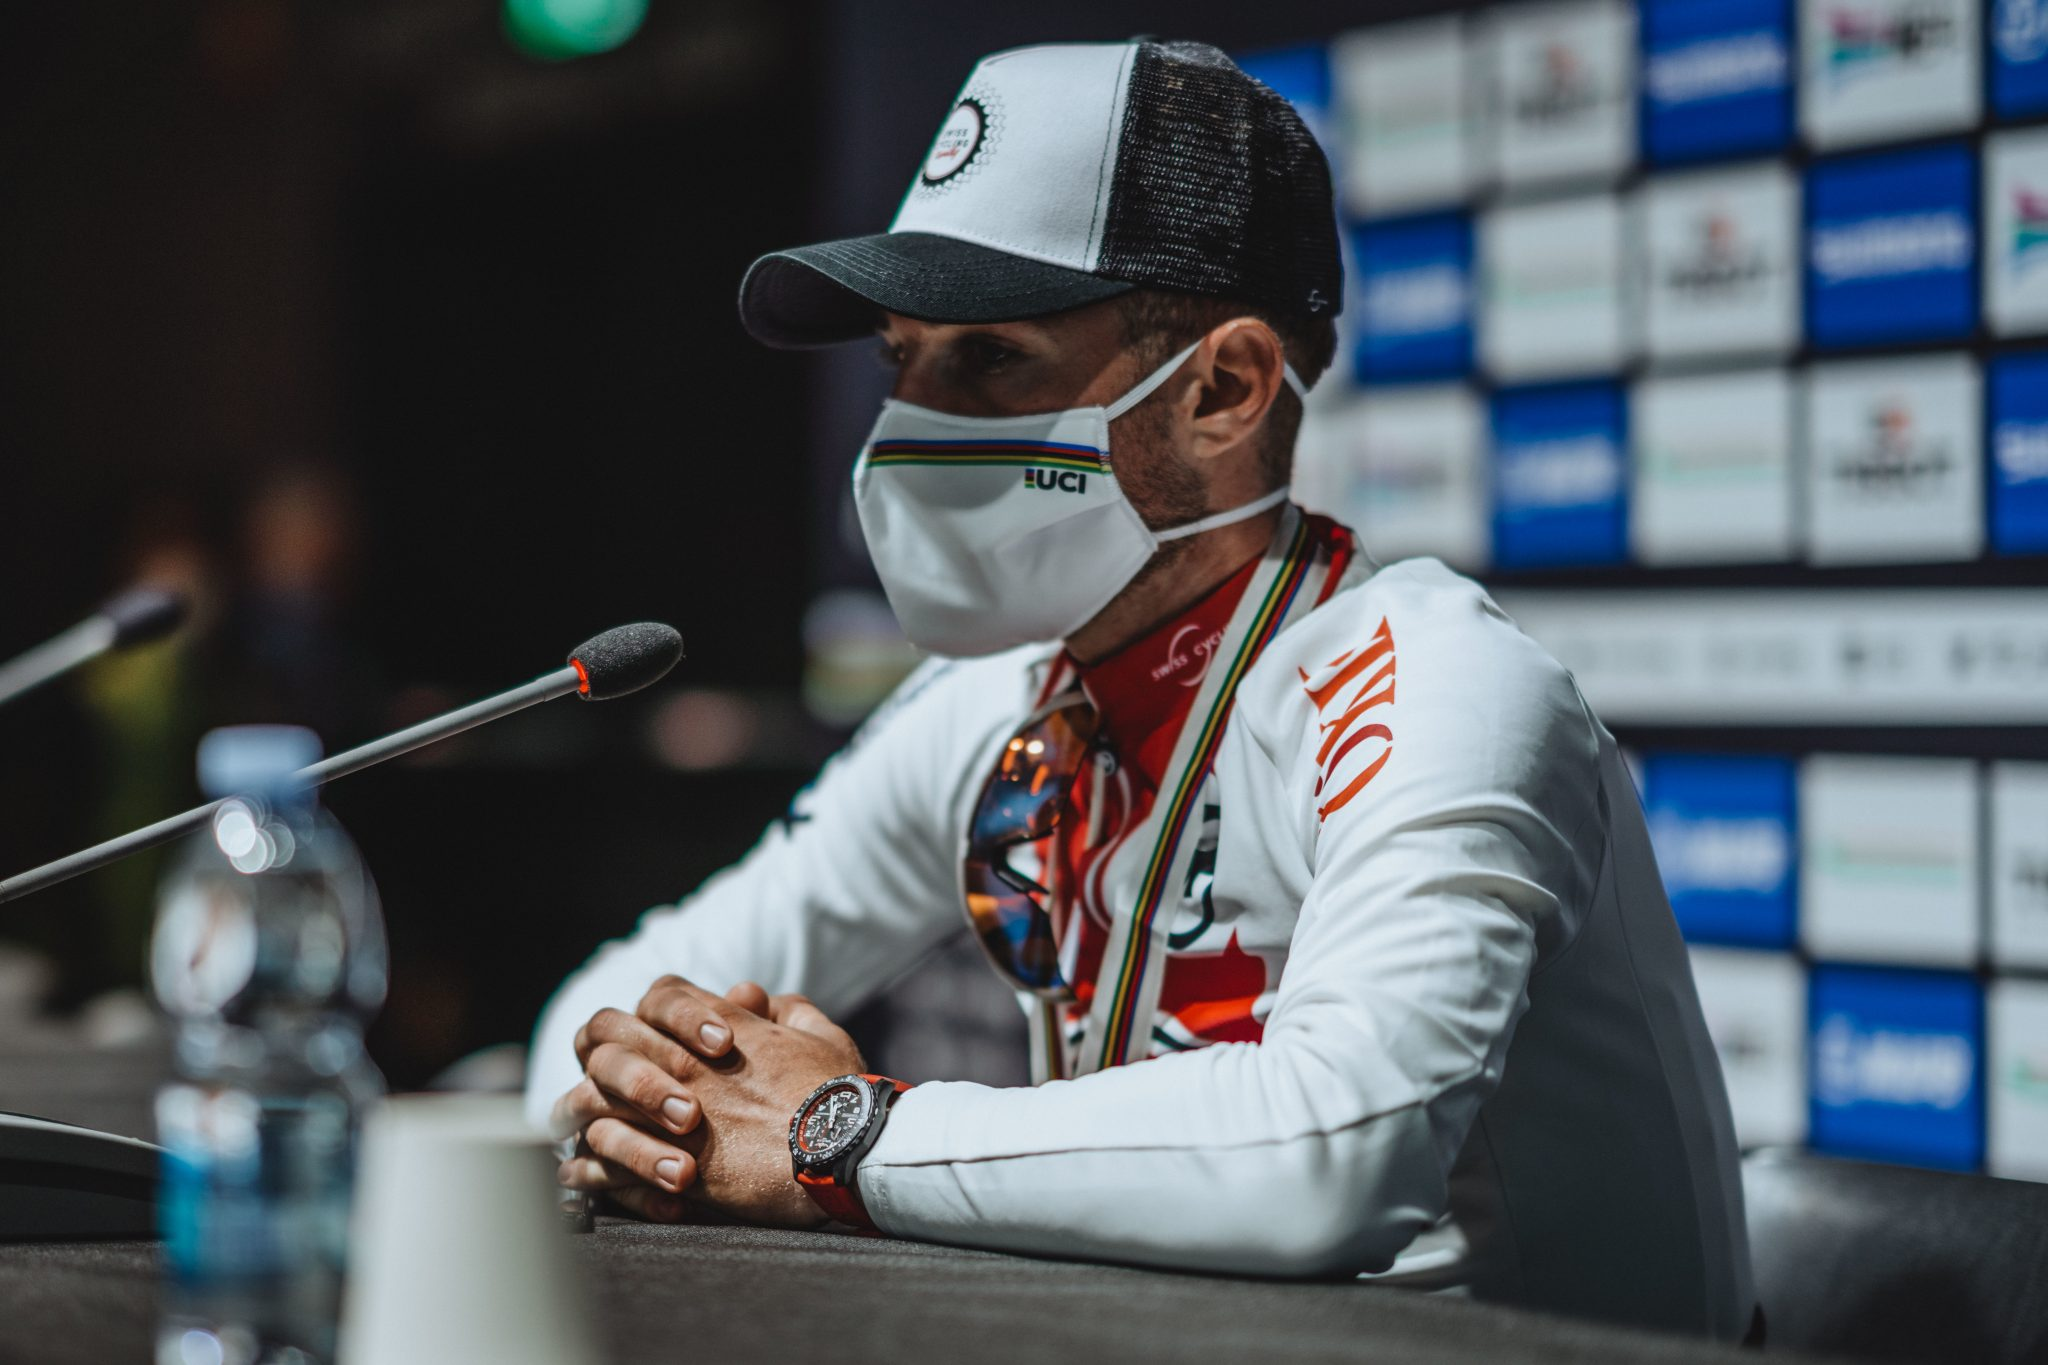 06_marc-hirschi-with-his-red-breitling-endurance-pro-at-the-2020-uci-road-world-cycling-championships-in-imola-it-2048x1365.jpg